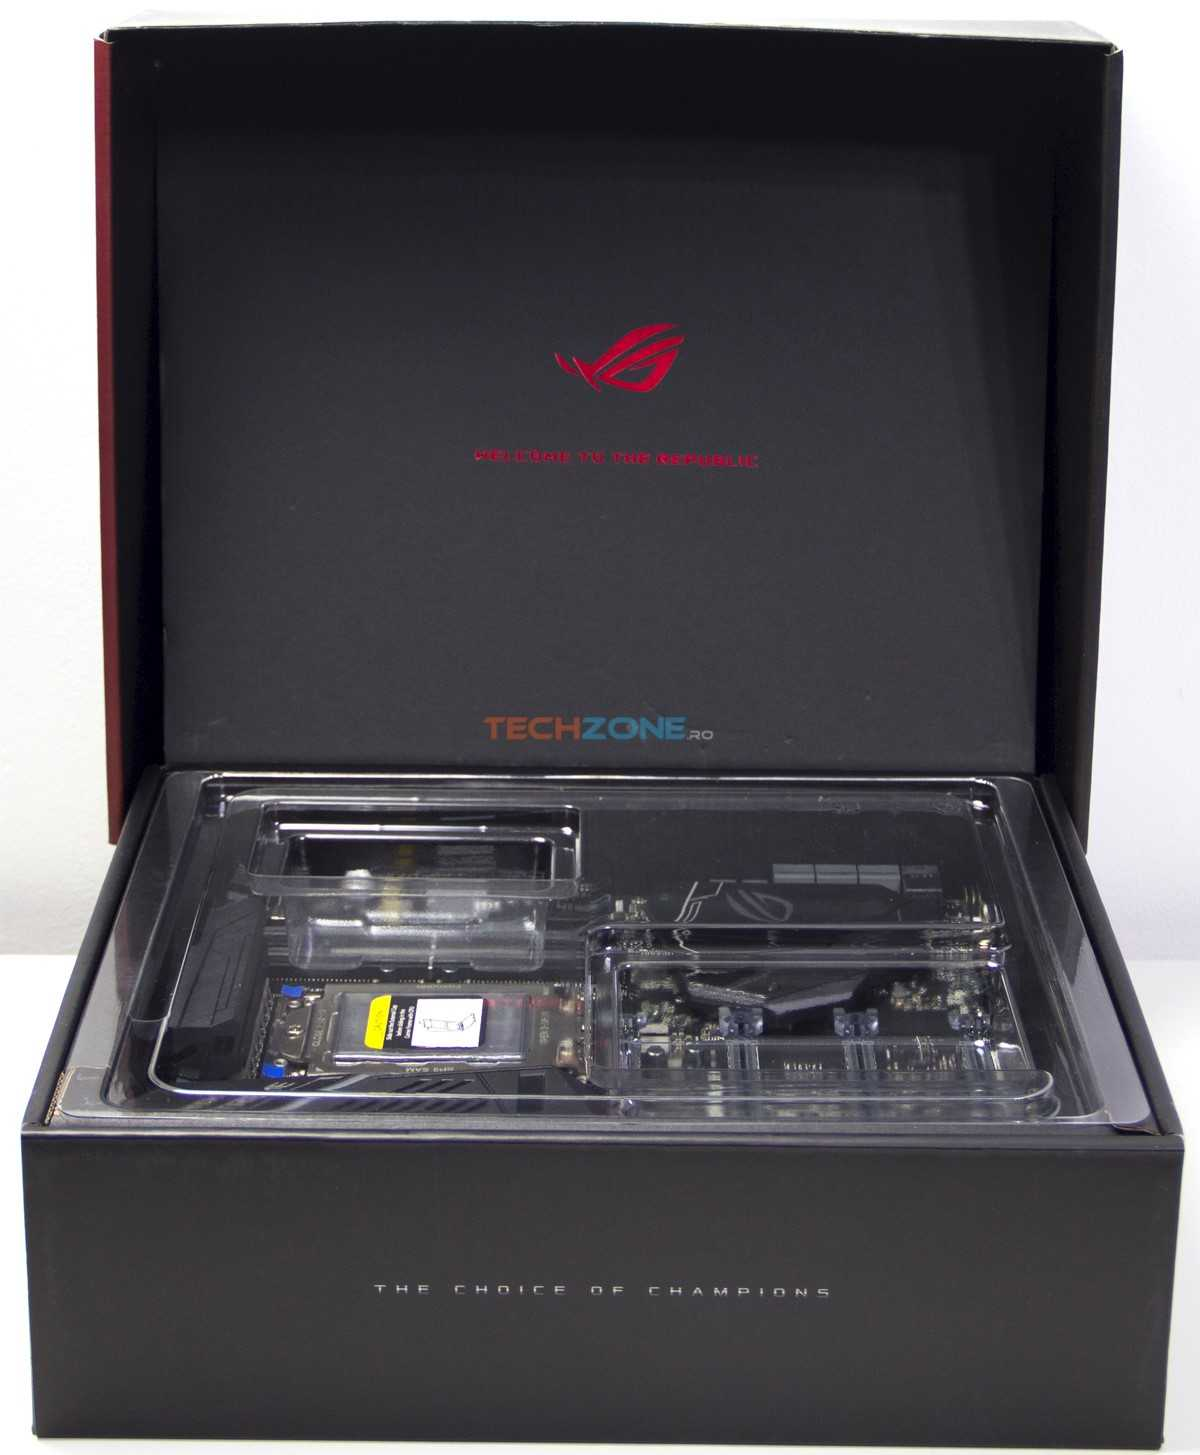 Asus Zenith Extreme inside